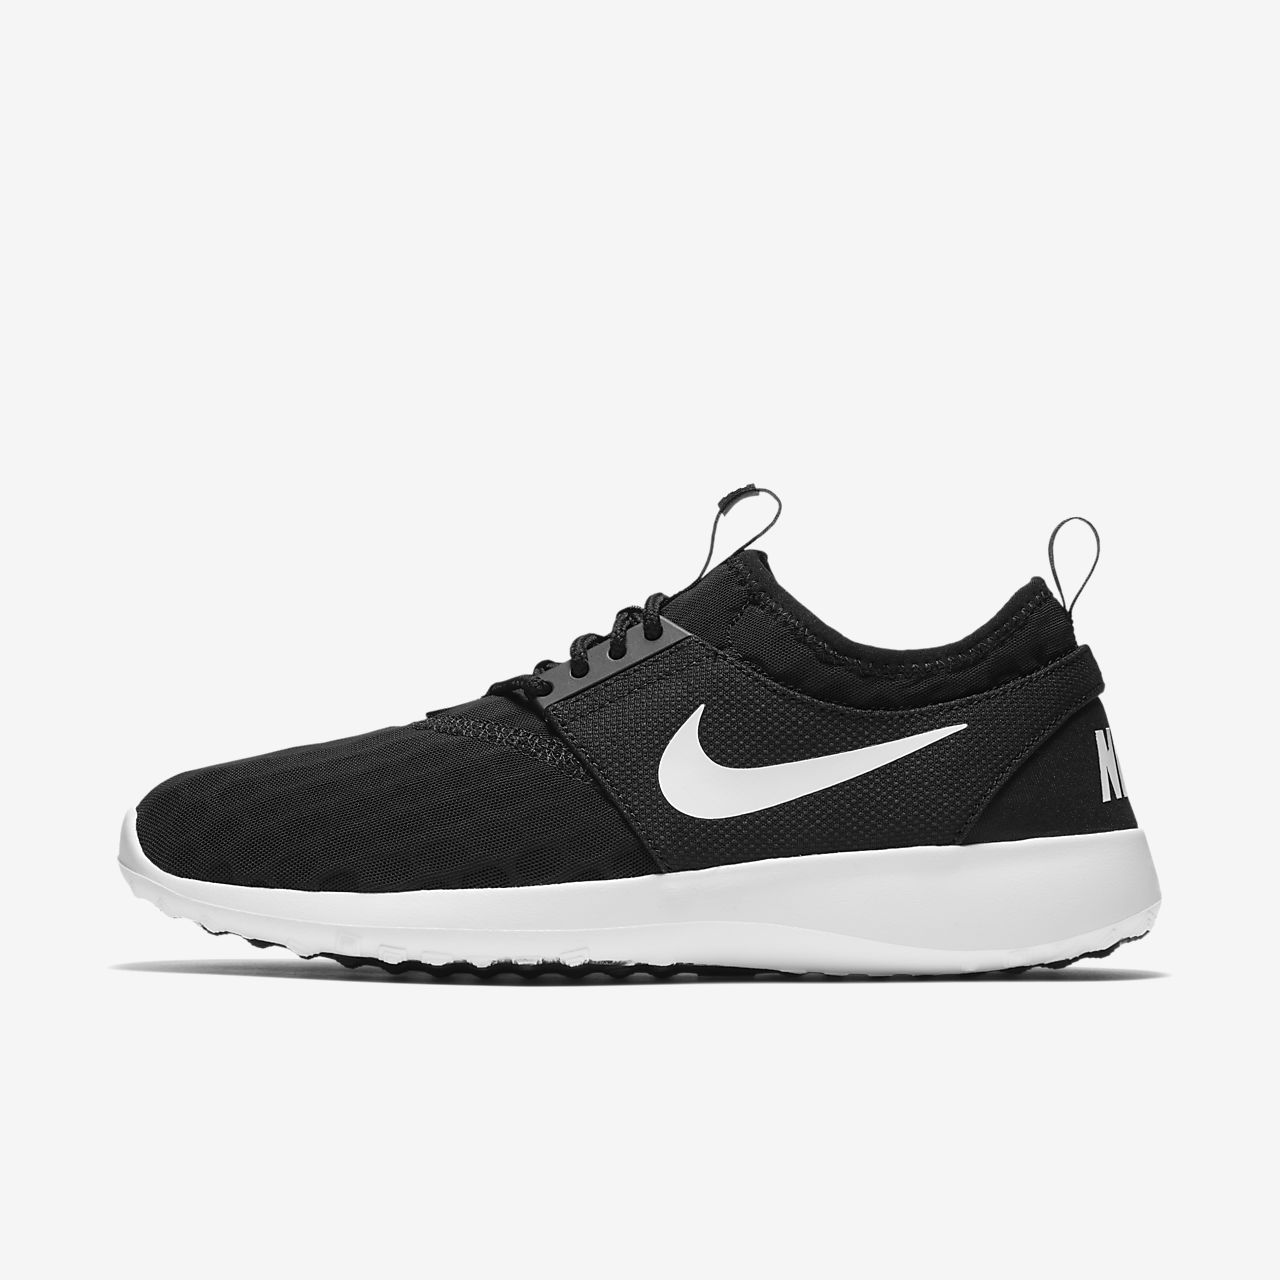 8f4770641e1e Nike Juvenate Women s Shoe. Nike.com